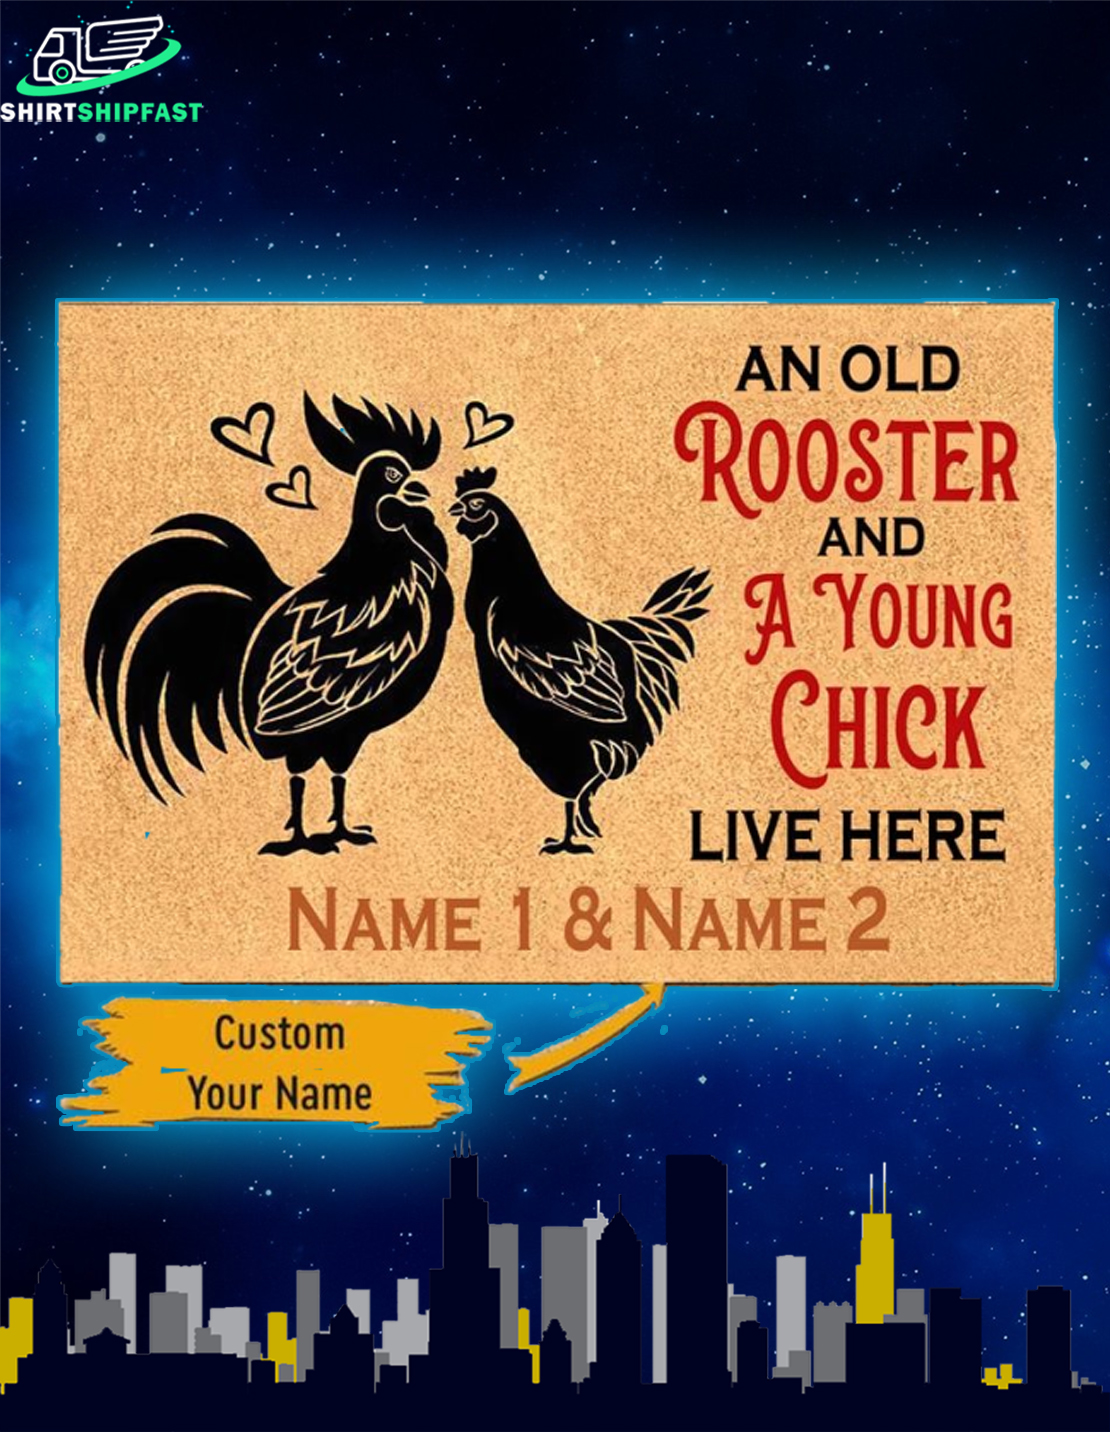 An old rooster and a young chick live here custom name doormat - Picture 1